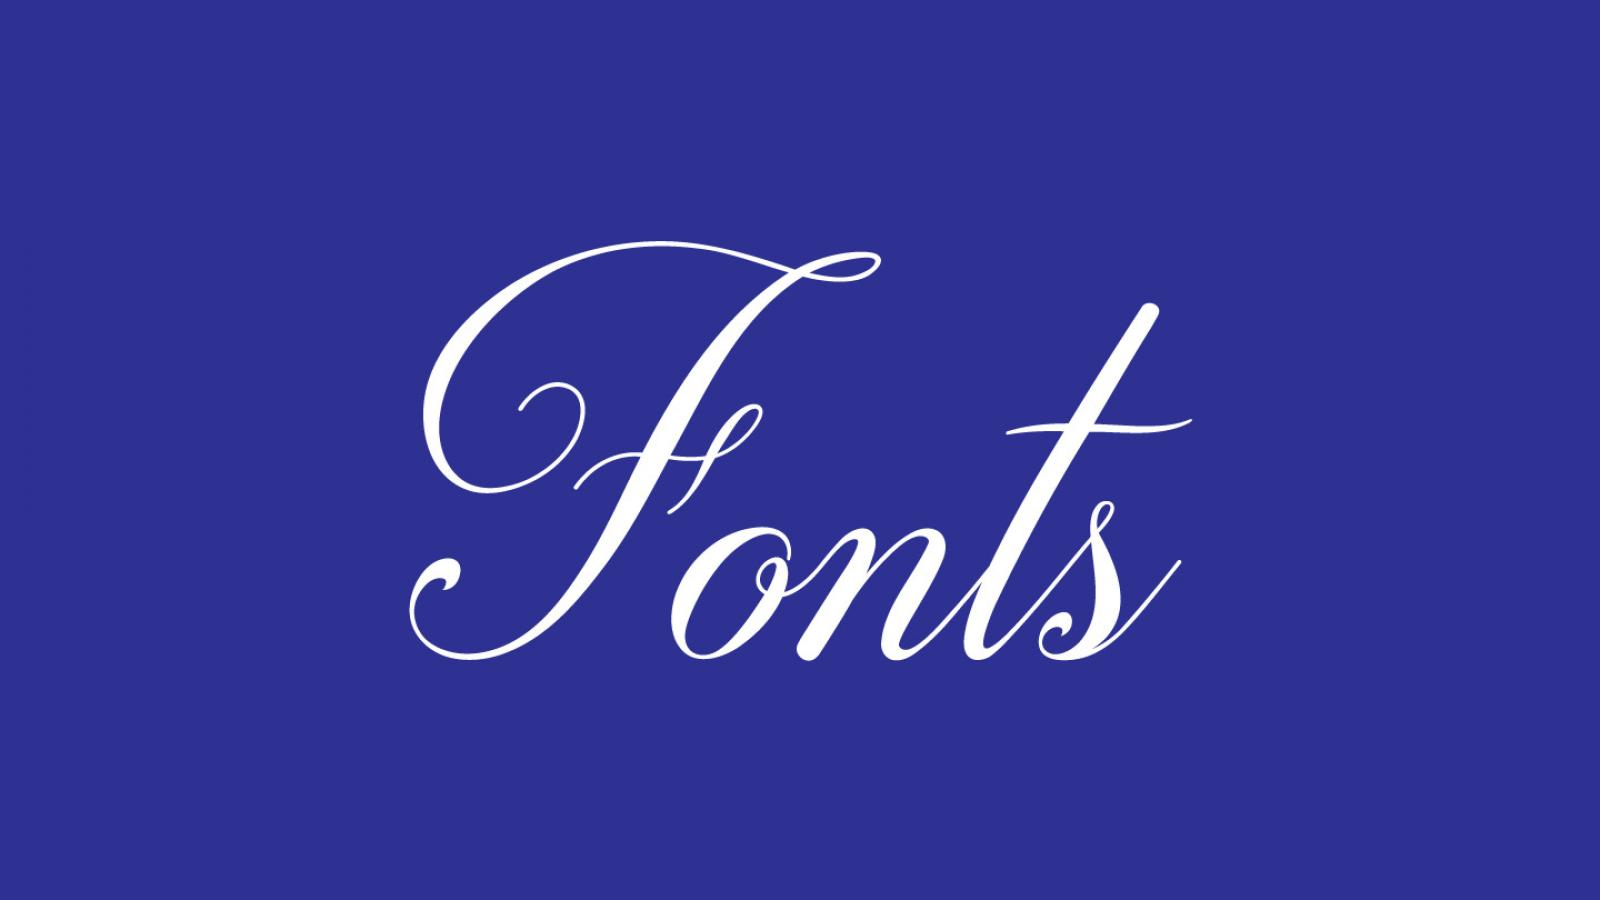 Friday Fresh Free Fonts - Generica, Darleston, Glacial Indifference